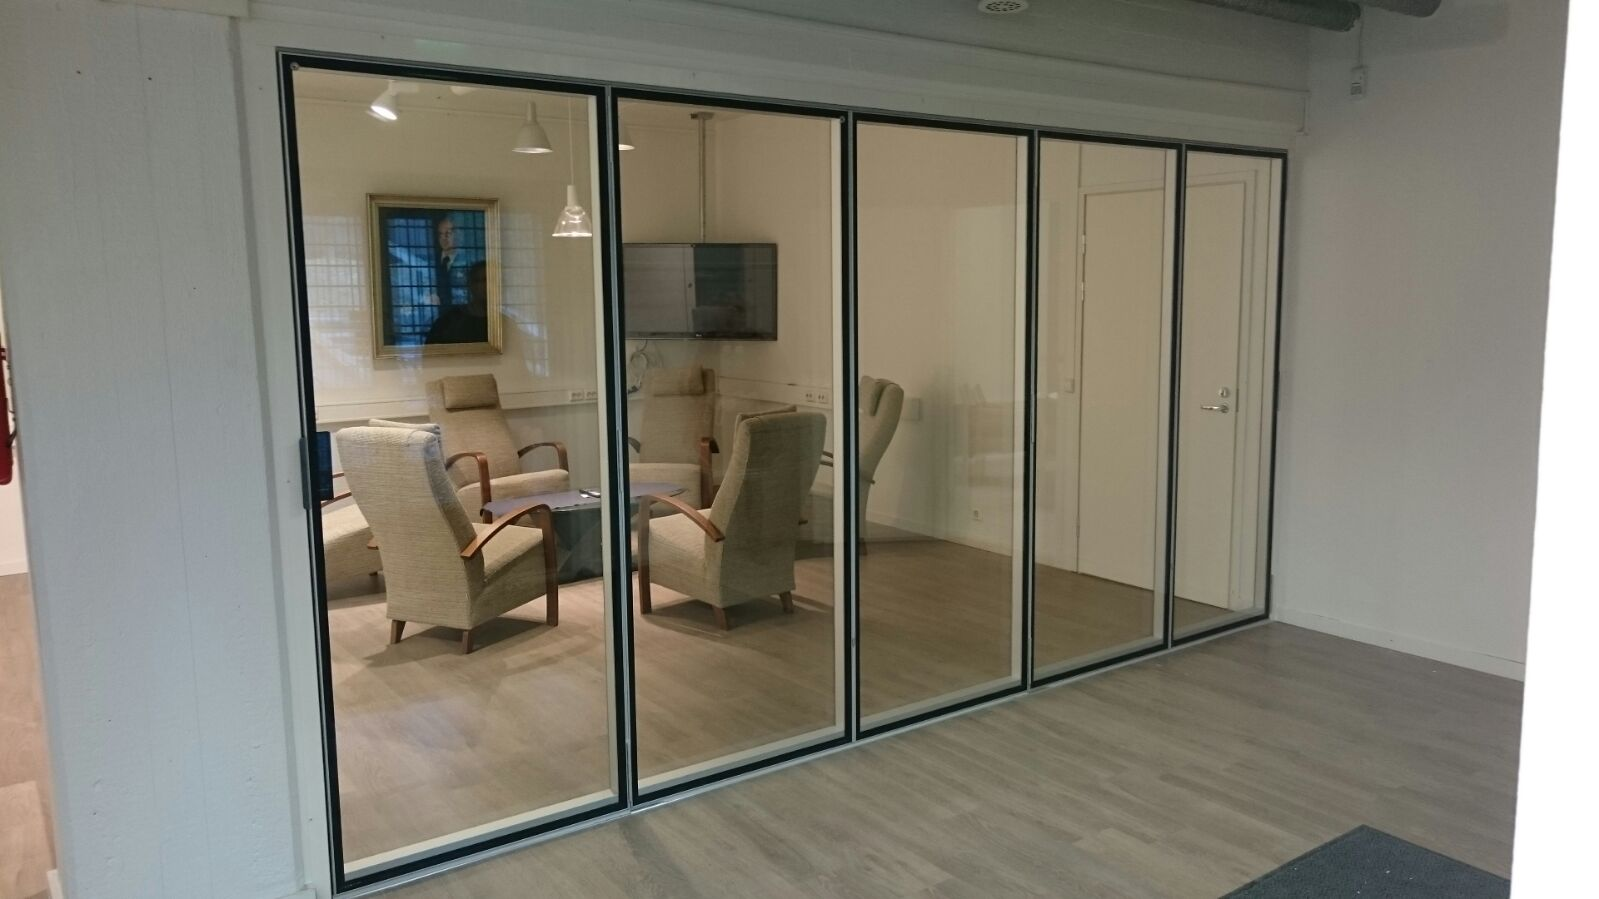 London wall launches new acoustic folding glass wall system for Collapsible glass wall